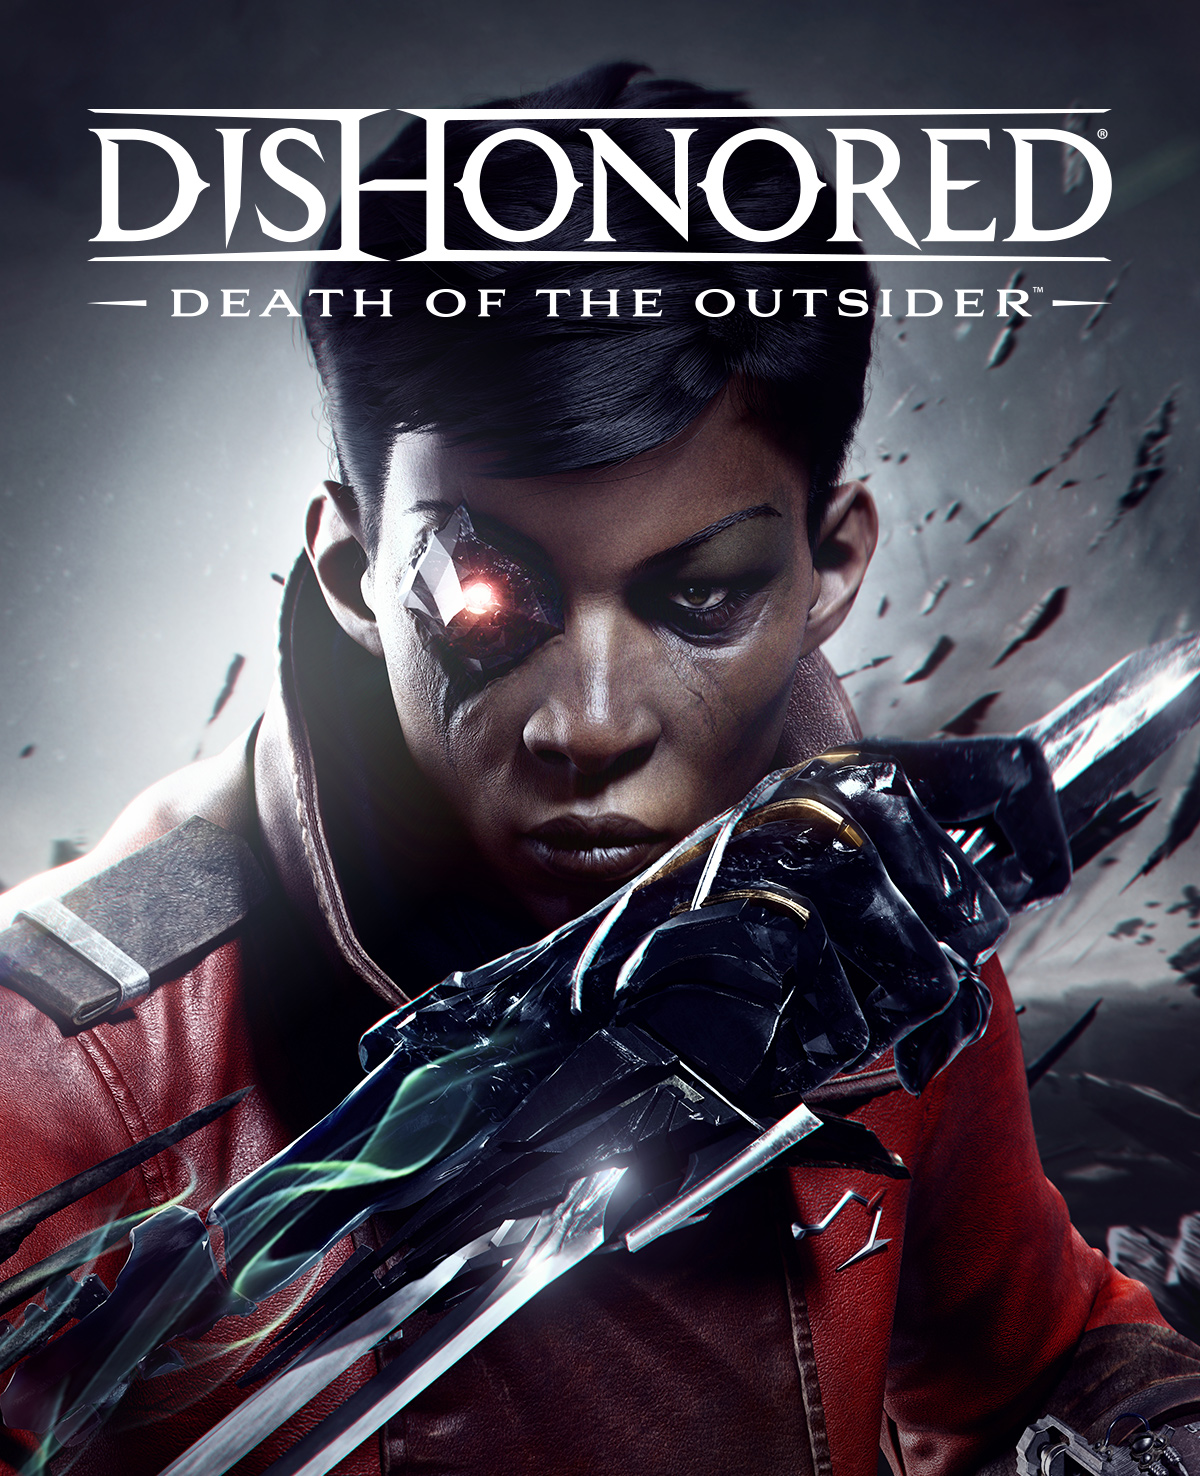 Dishonored: Death of the Outsider - Steam account